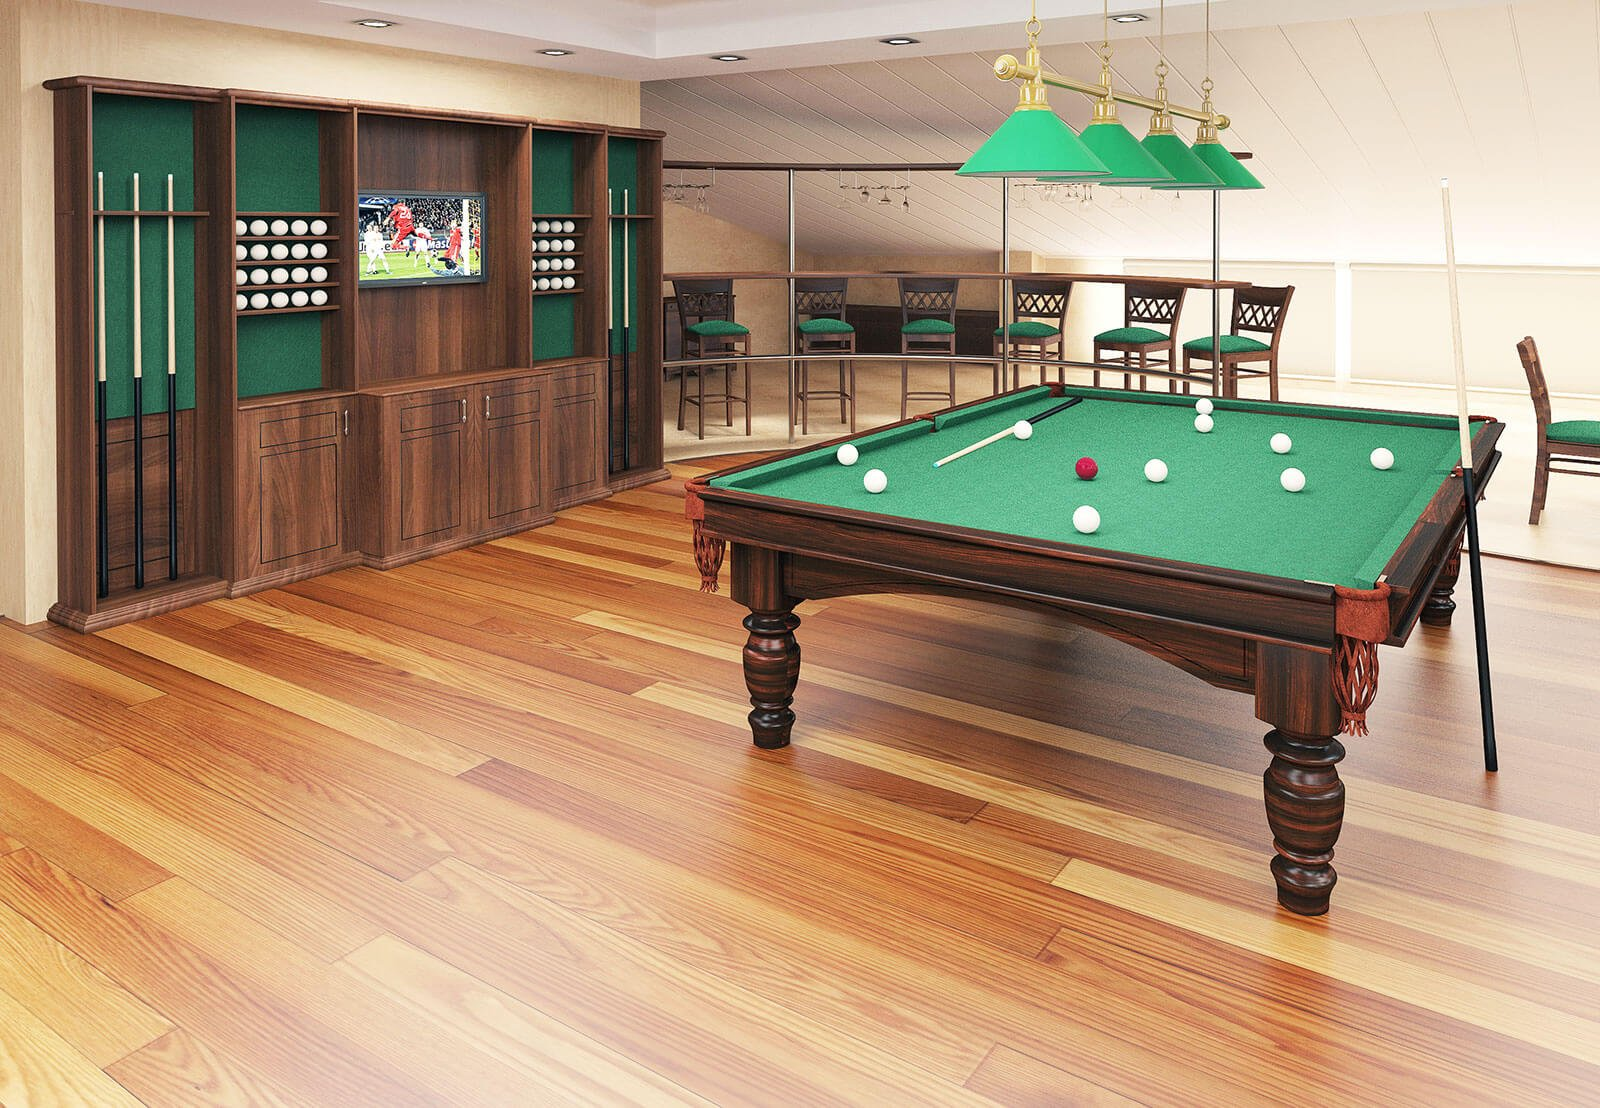 3D commercial visualisation of billiard room, 3d modeling, London, UK